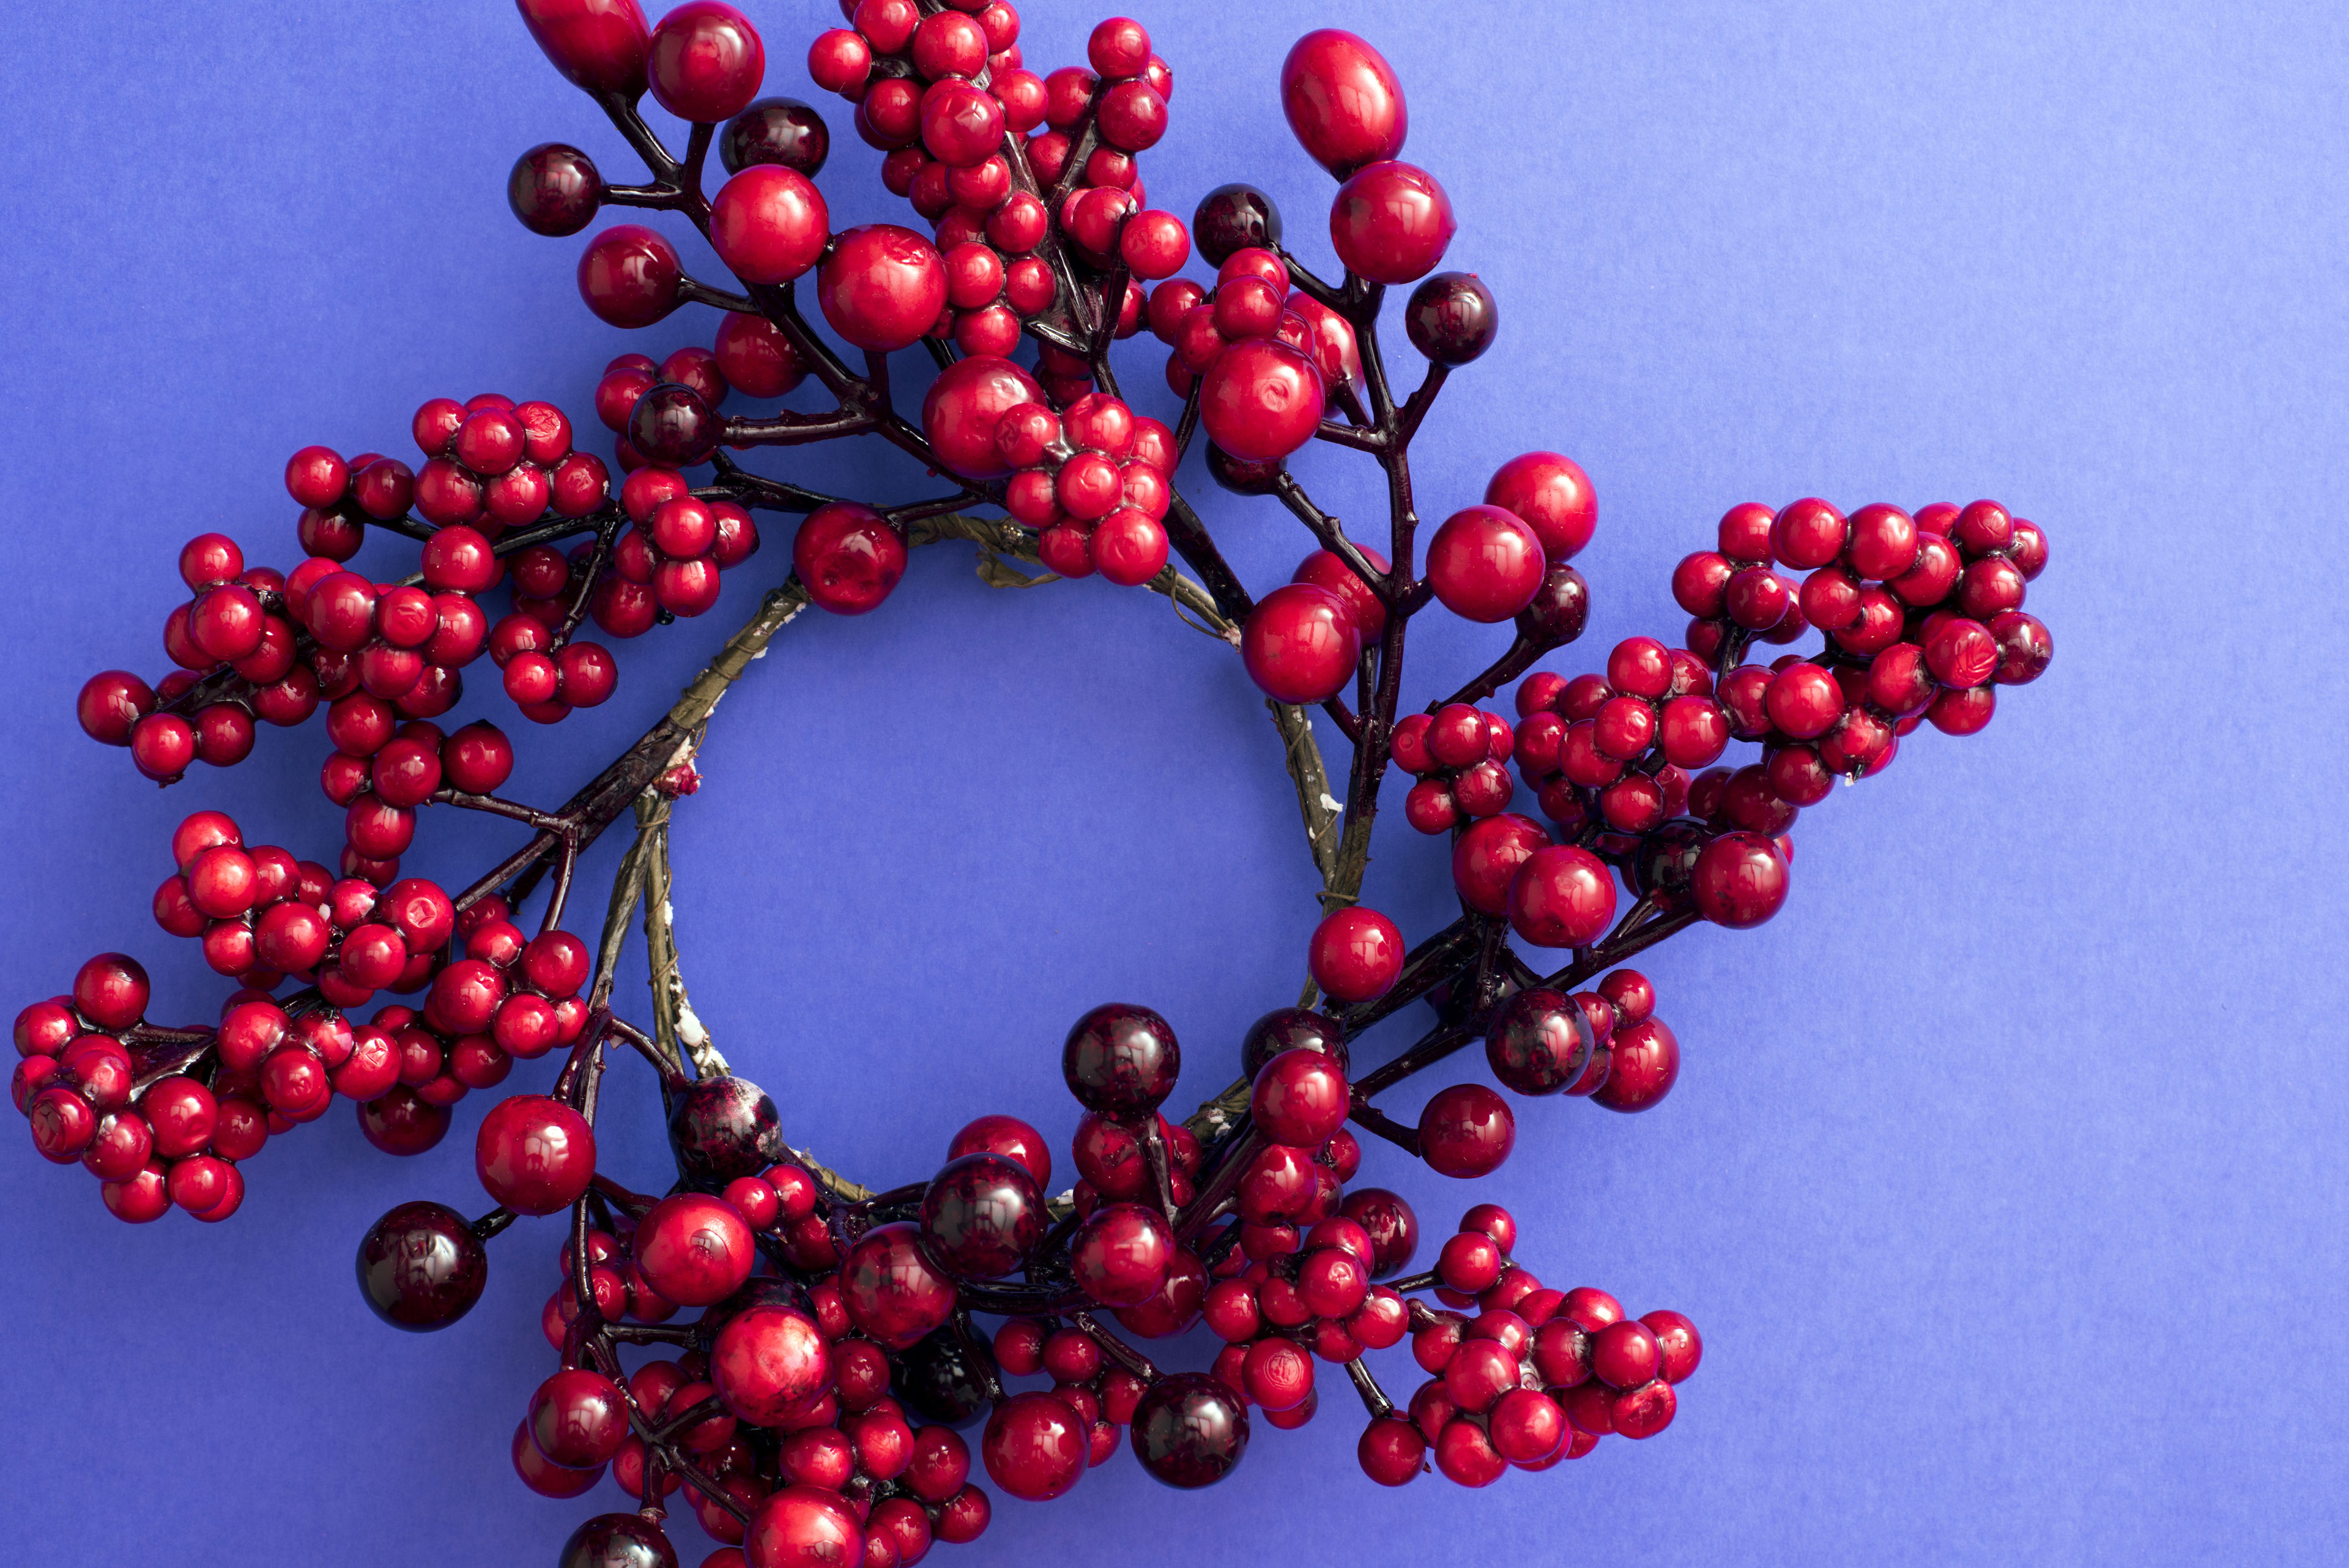 Traditional circular red berry Christmas wreath decoration over a colorful purple blue background with copy space for your holiday greeting